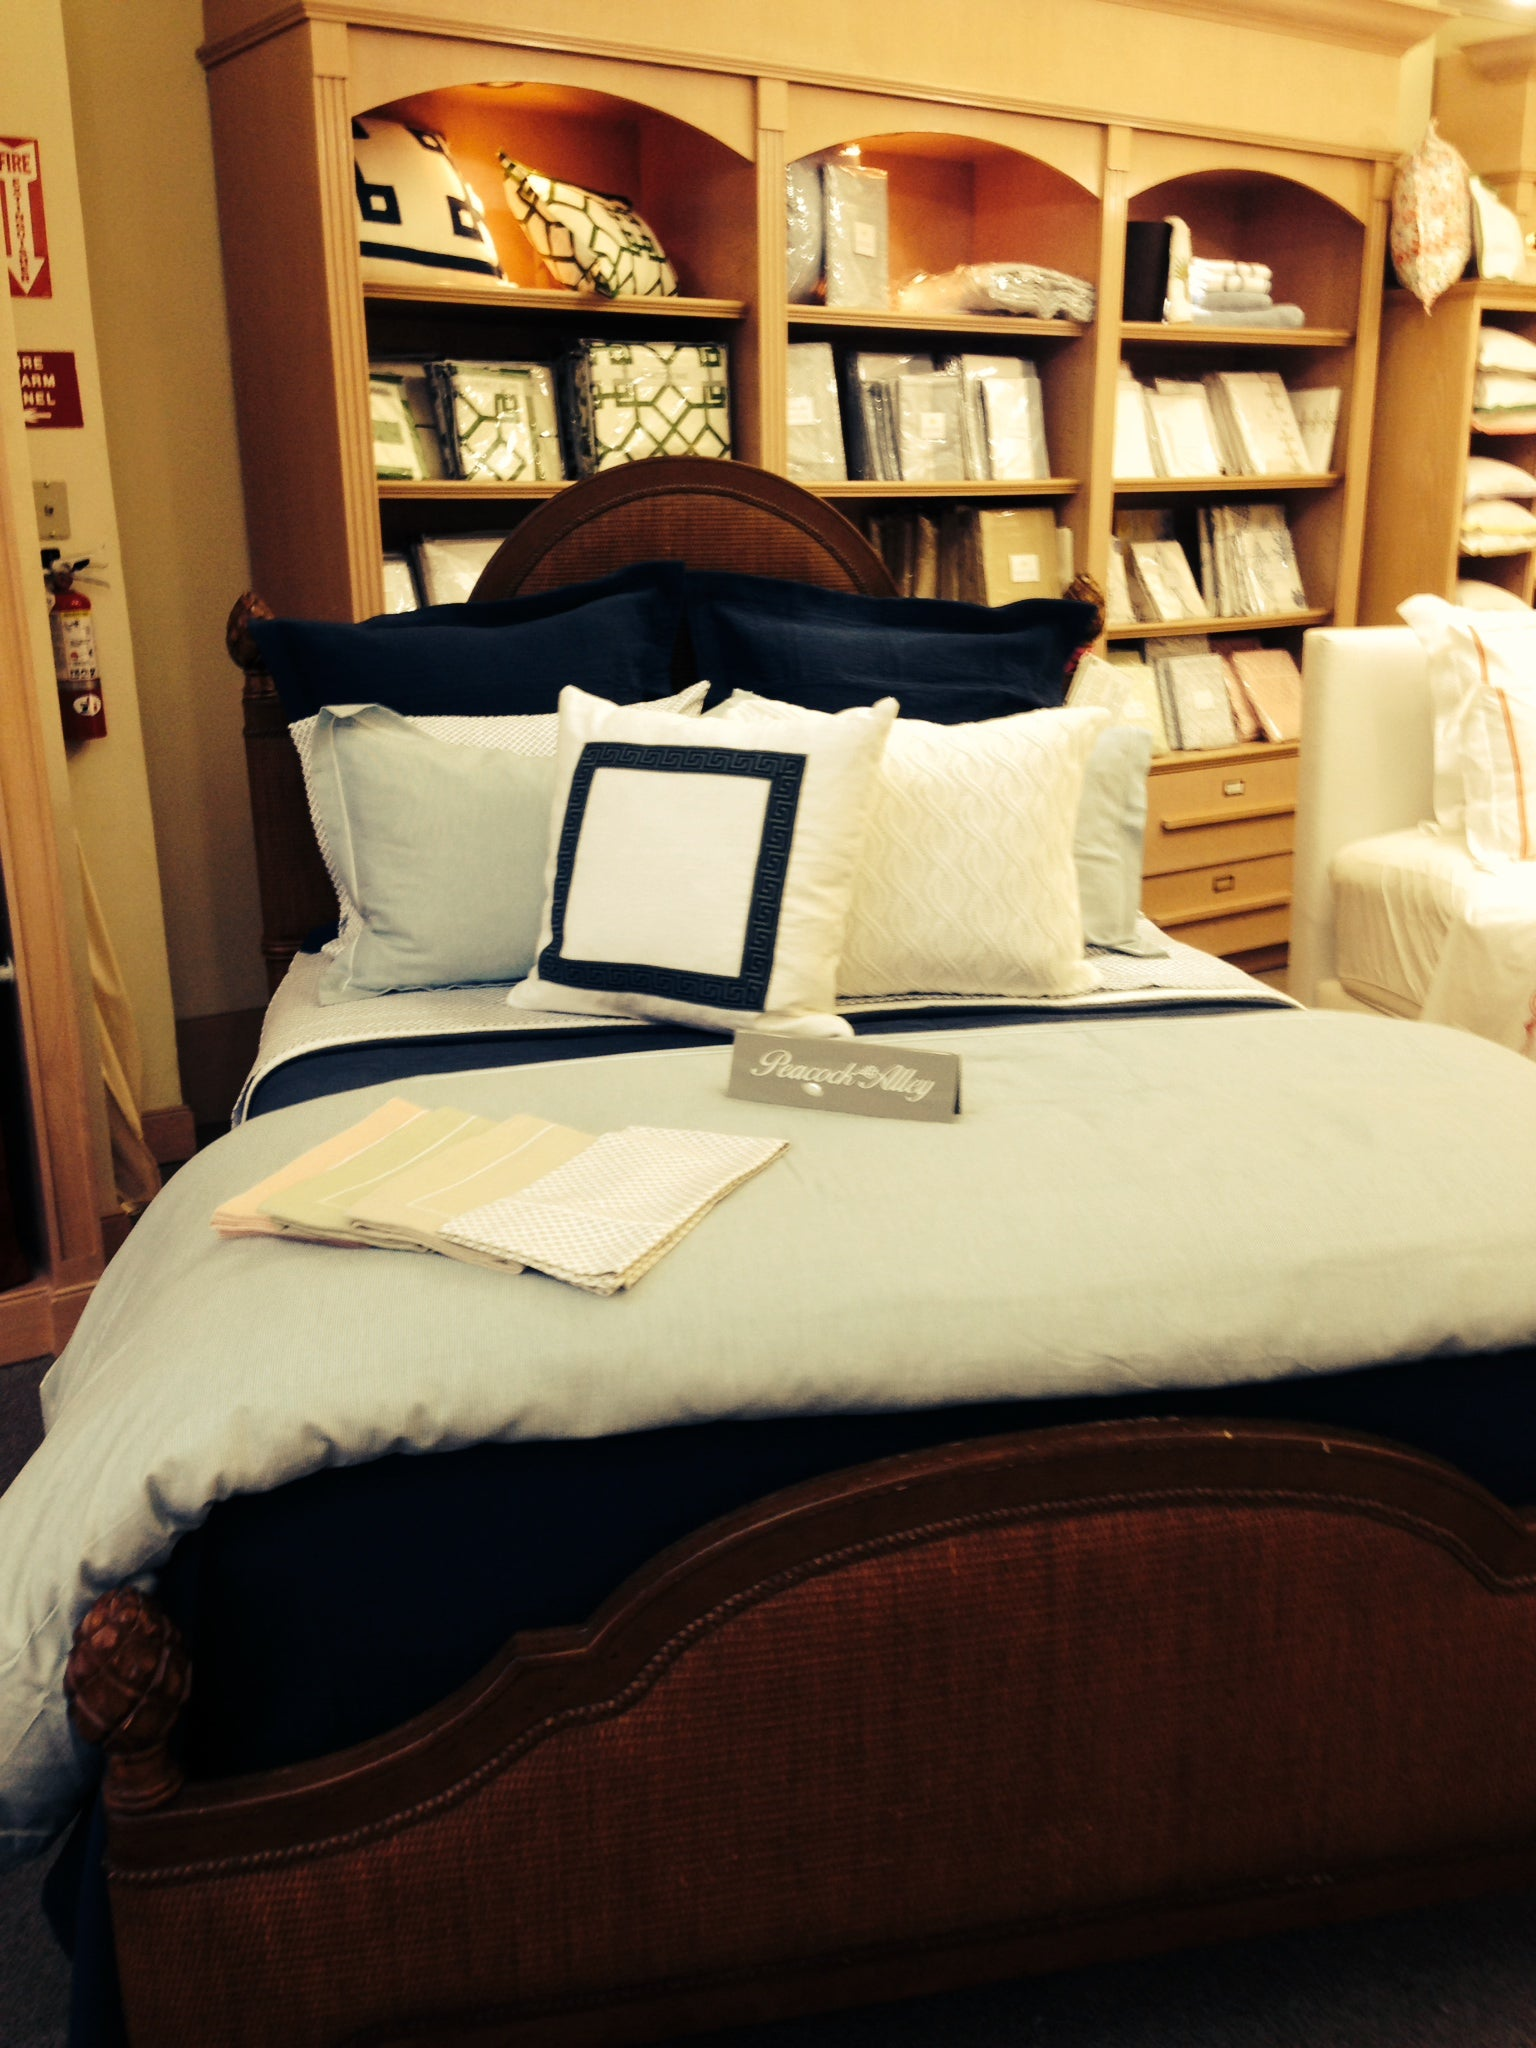 Store display bed dressed in Peacock Alley linens